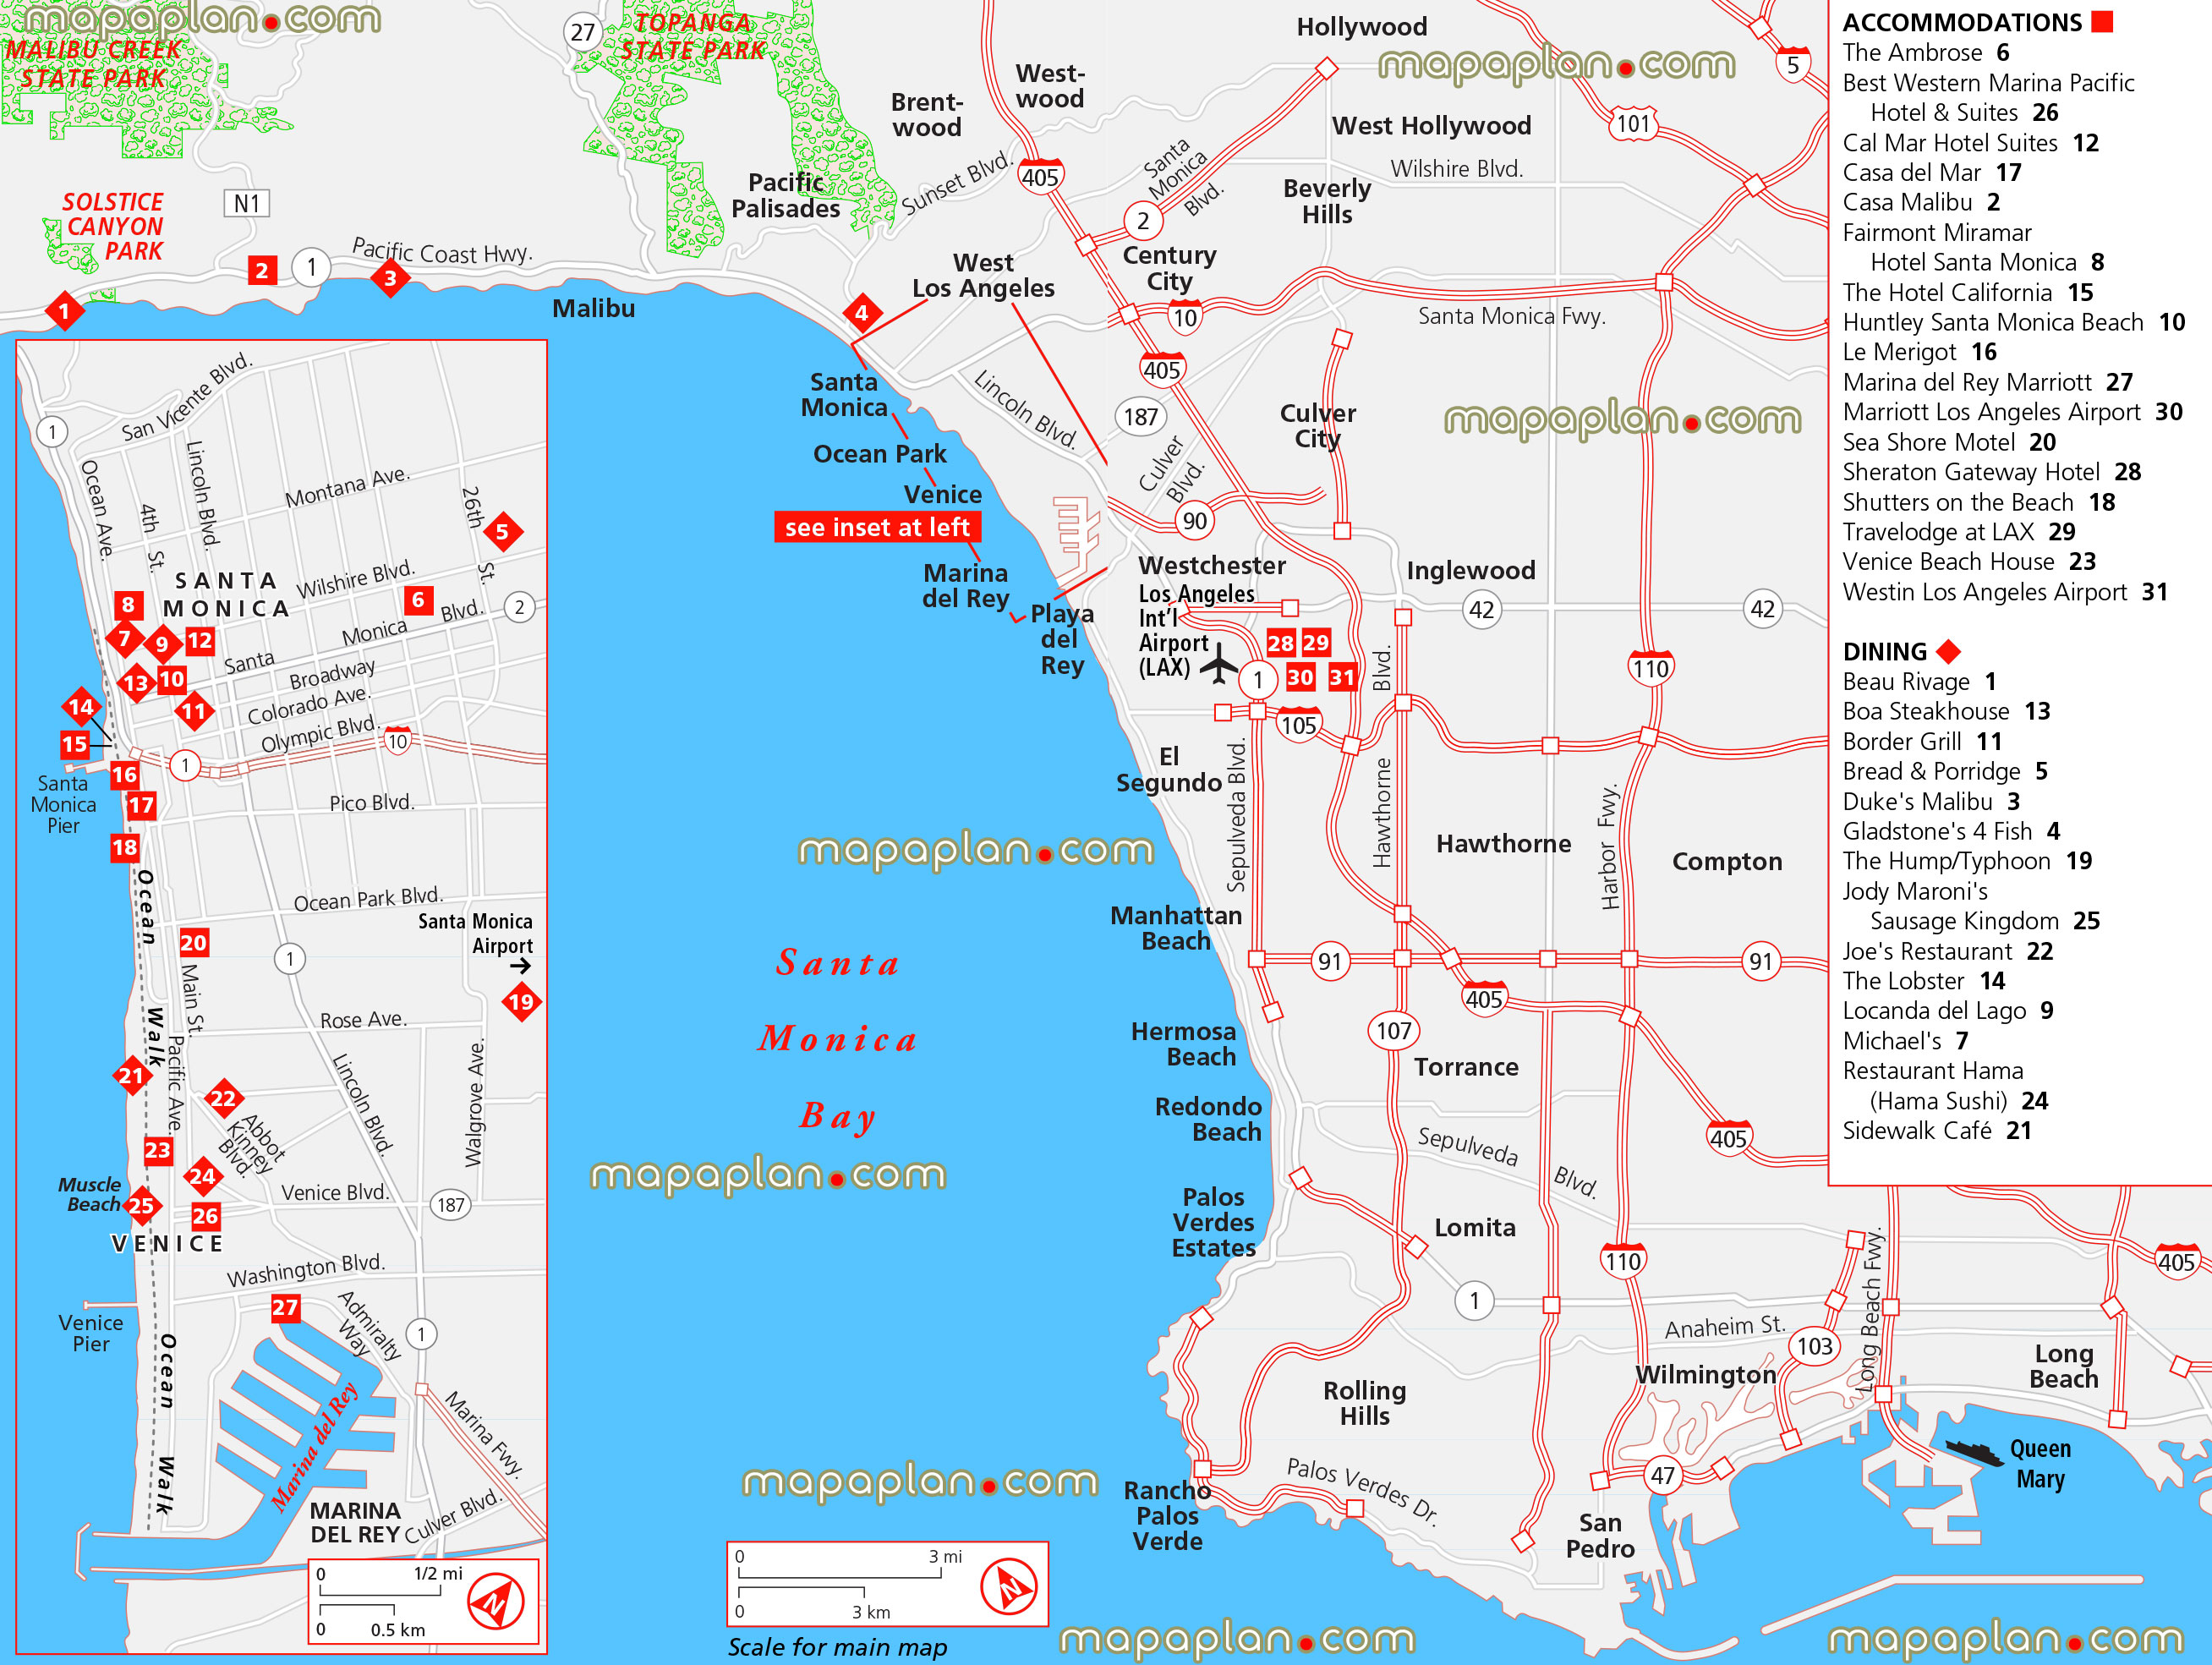 Santa Monica Beach Hotels Map | The best beaches in the world